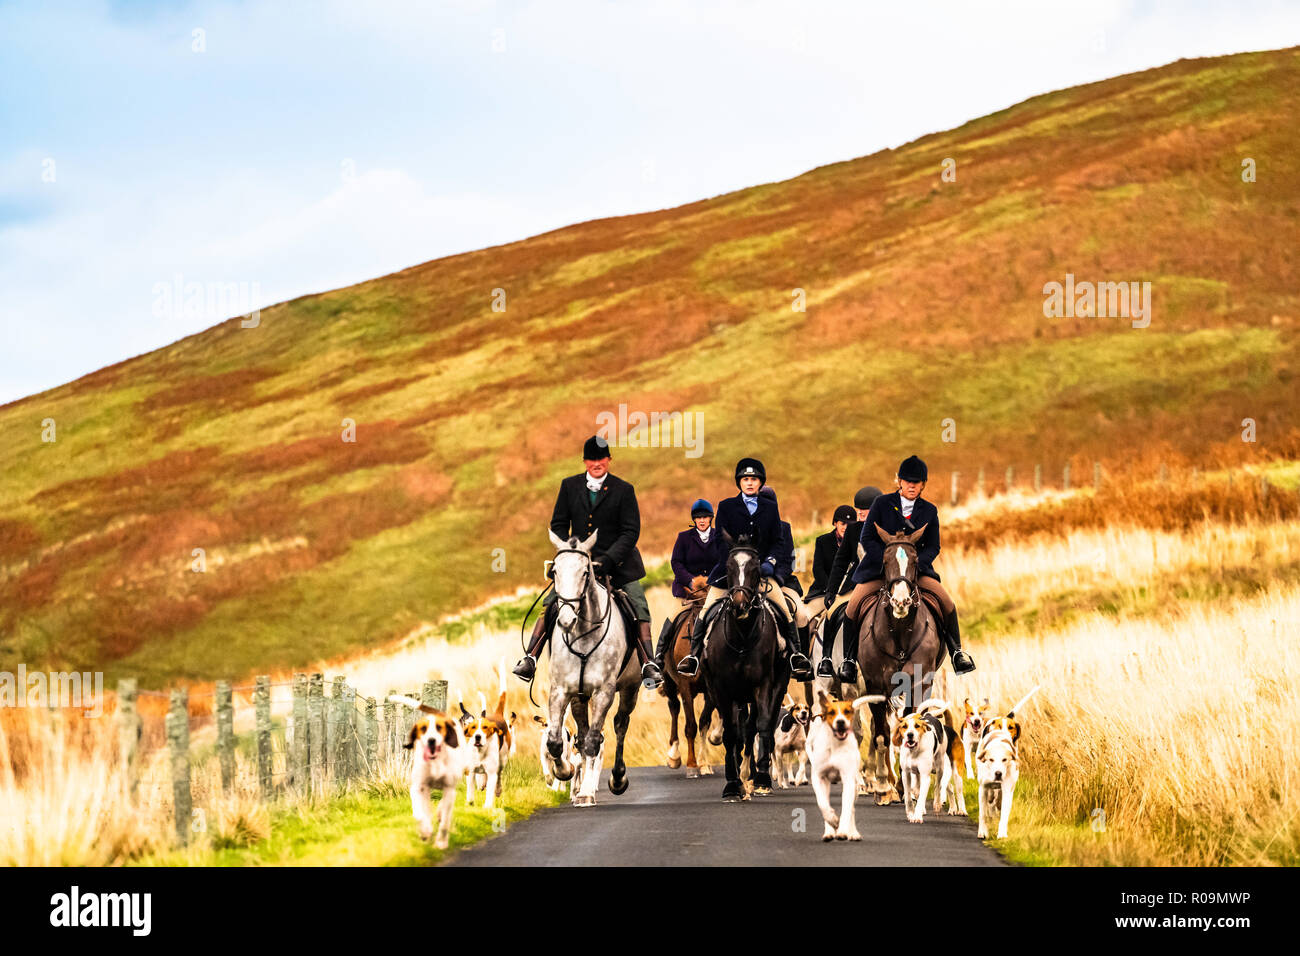 Hownam, Kelso, Scottish Borders, UK. 3rd November 2018. The Border Hunt, a hill farmers pack, trot home after an efficient and productive day of fox control during their season Opening Meet near Hownam village. The fell hounds are a fundamental element of conservation in the area due to their ability to search large bracken beds on steep hillsides. Credit: Chris Strickland / Alamy Live News - Stock Image